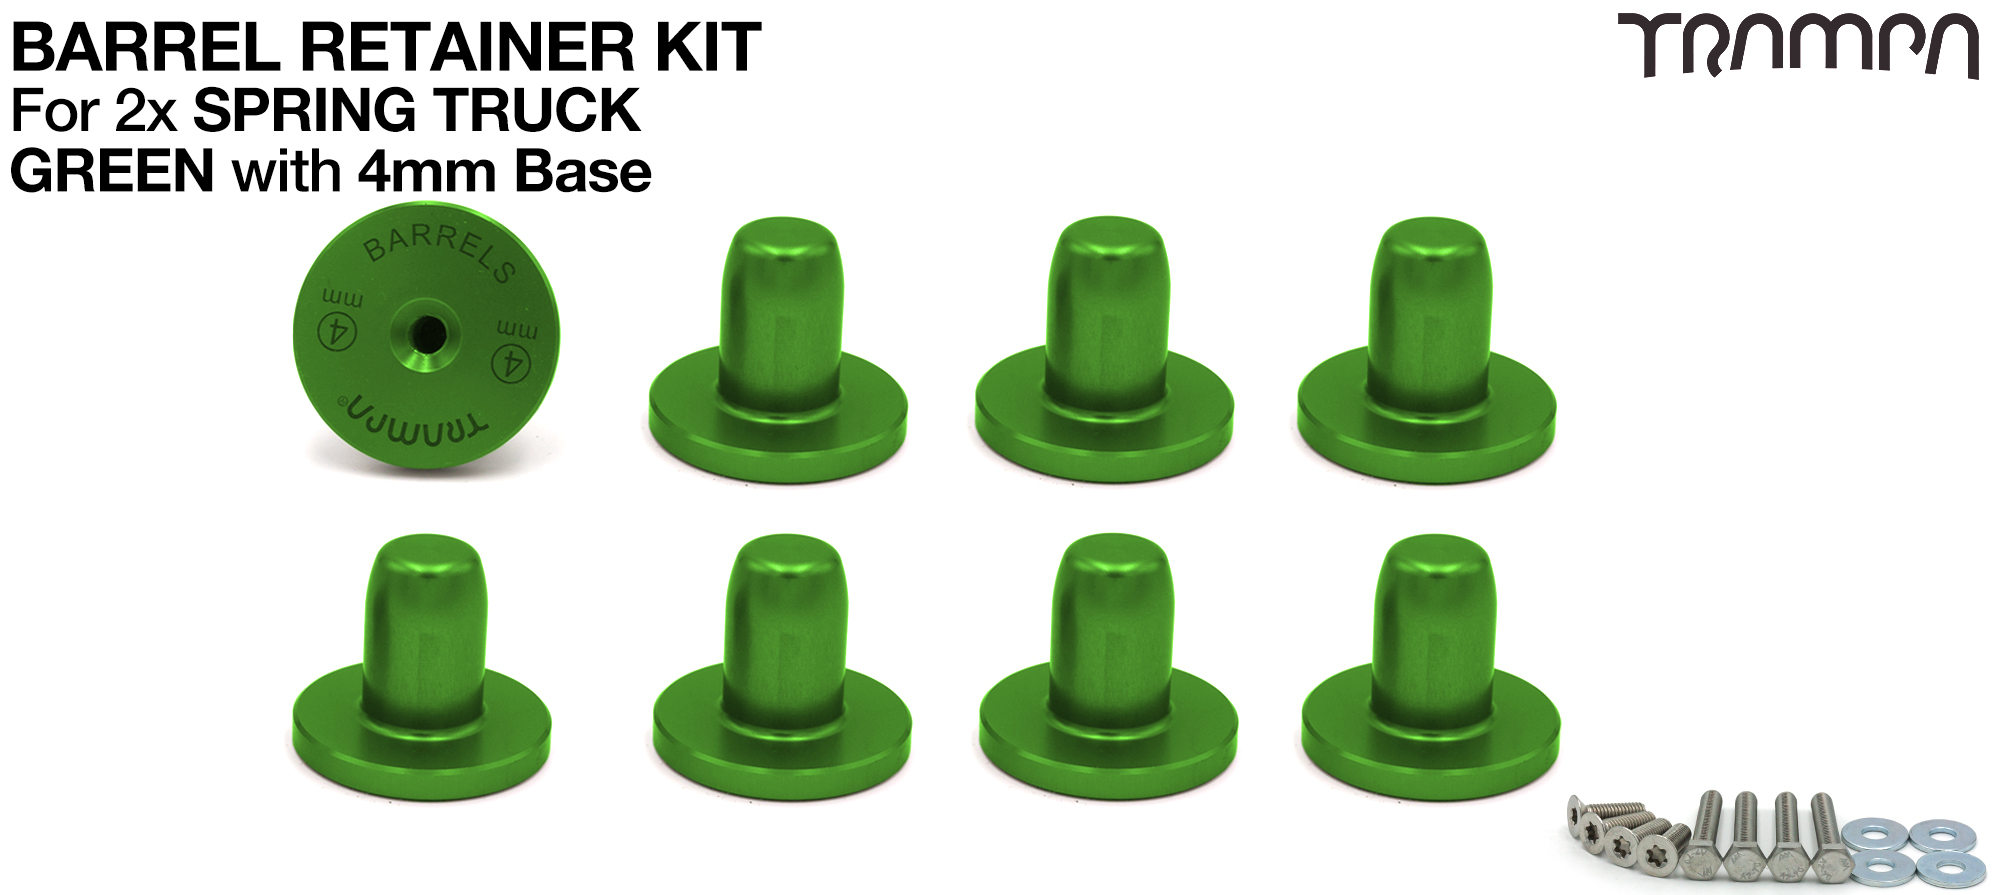 GREEN Barrel Retainers